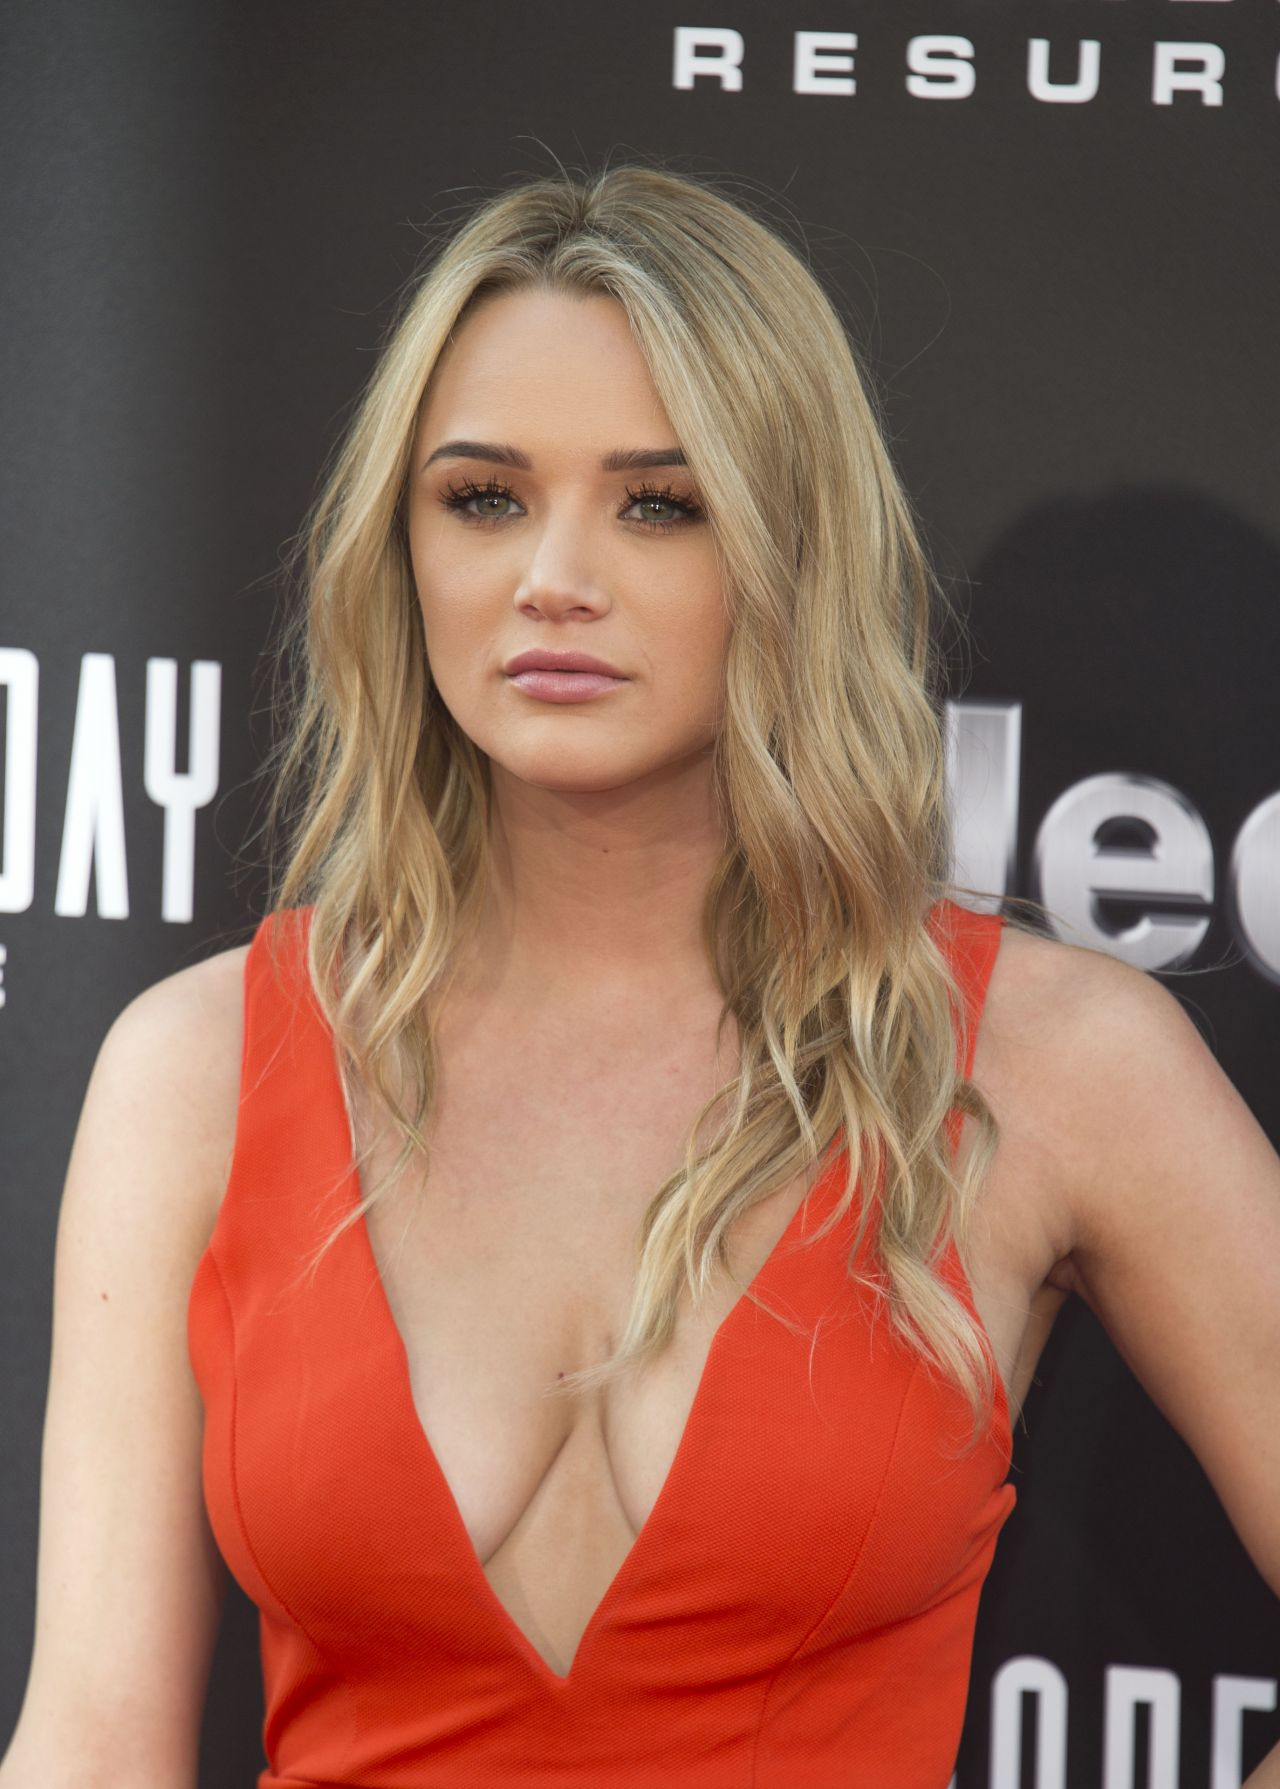 hunter king wikihunter king listal, hunter king site, hunter king gallery, hunter king family, hunter king gif, hunter king krush deck, hunter king wiki, hunter king instagram, hunter king, hunter king hot, hunter king twitter, hunter king coin, hunter king home and away, hunter king measurements, hunter king age, hunter king bikini, hunter king net worth, hunter king feet, hunter king imdb, hunter king monster strike